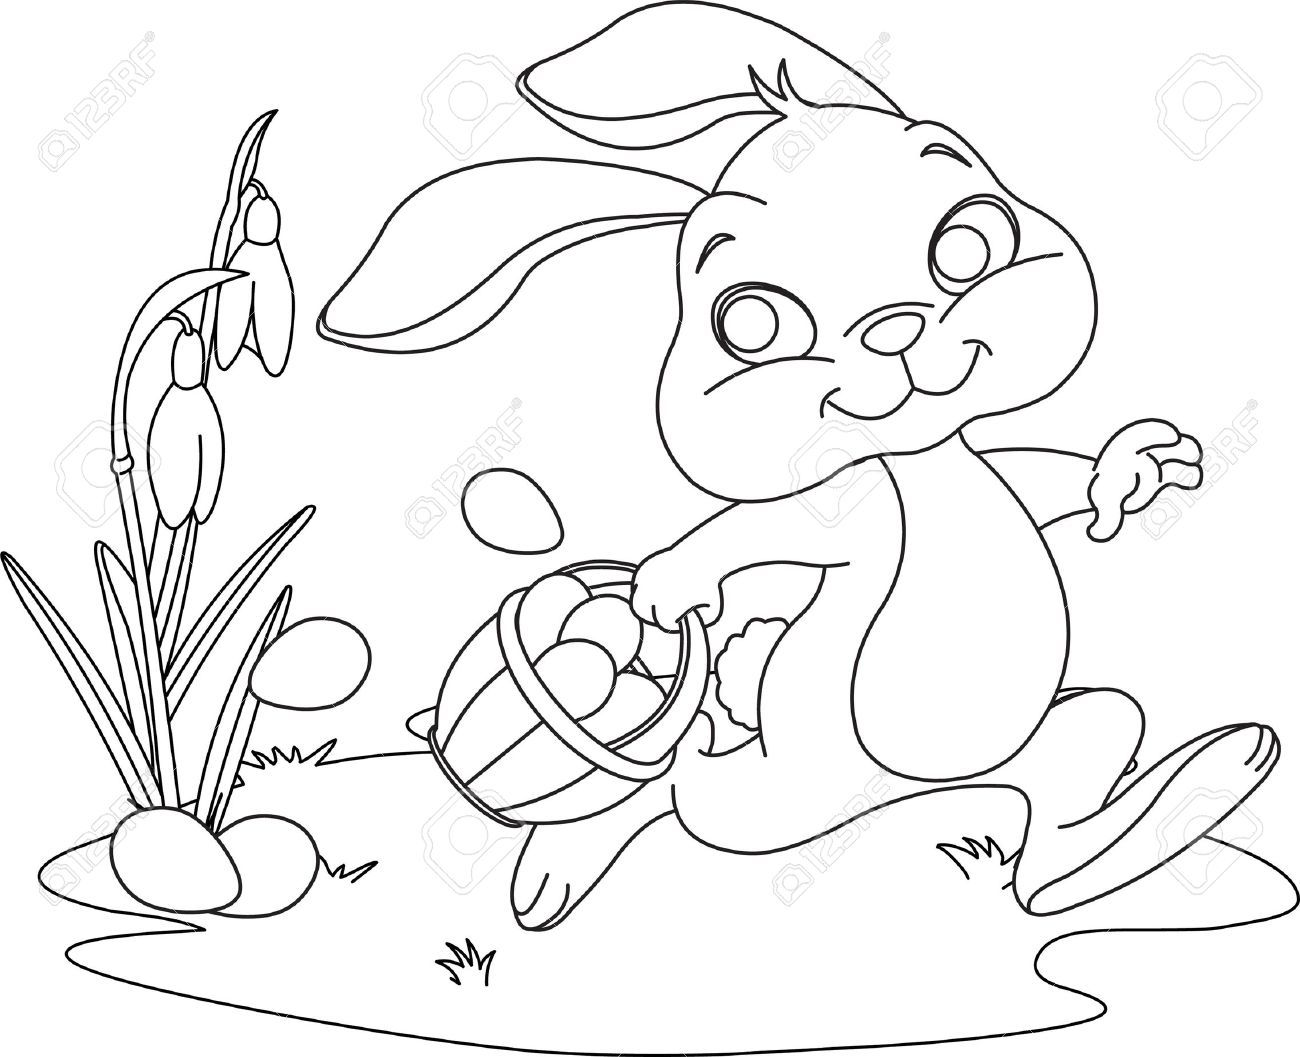 Cute Easter Bunny Hiding Eggs Coloring Page Bunny Coloring Pages Easter Bunny Colouring Dog Coloring Page